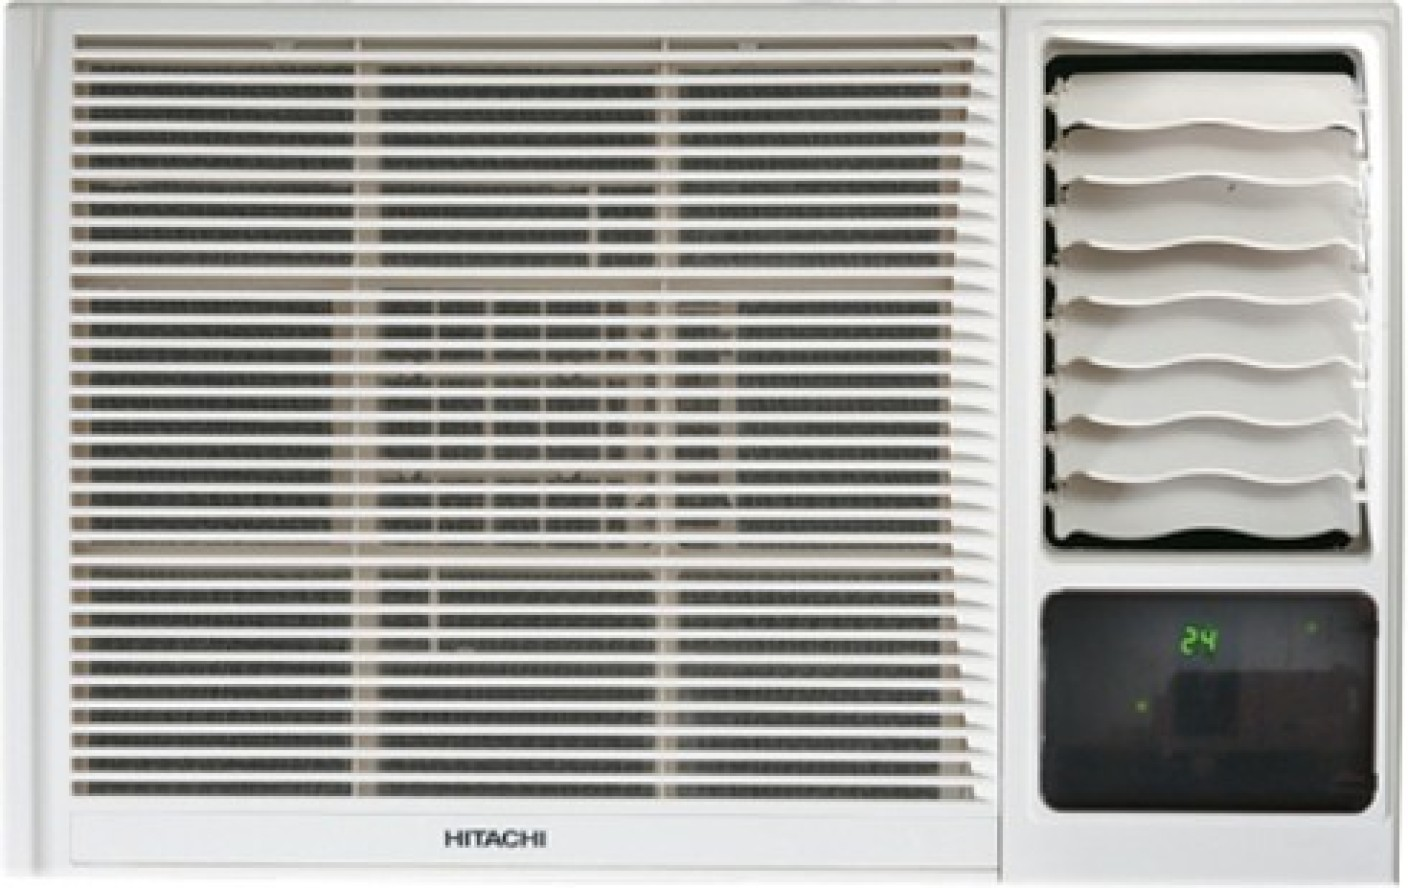 Buy hitachi 1 ton 3 star bee rating 2017 for 1 ton window ac power consumption per hour